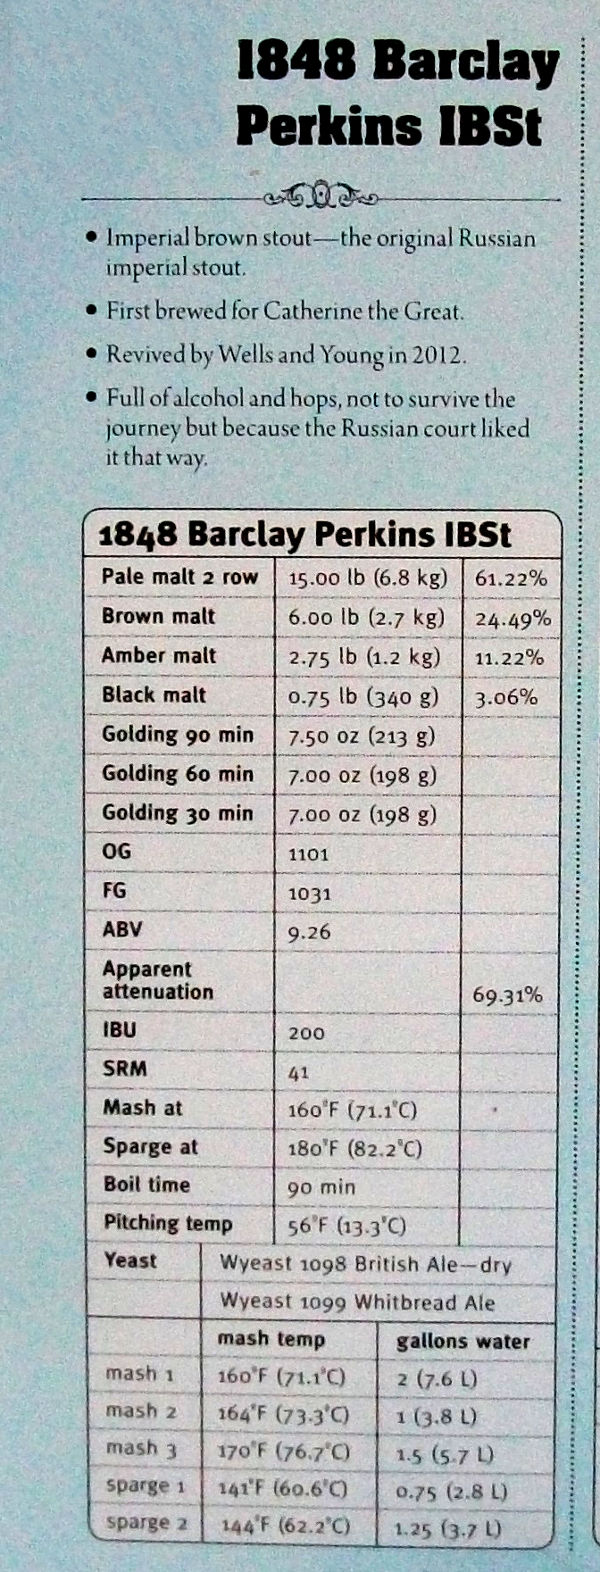 Home brewing recipe for a historical 1848 Barclay Perkins Imperial Brown Stout